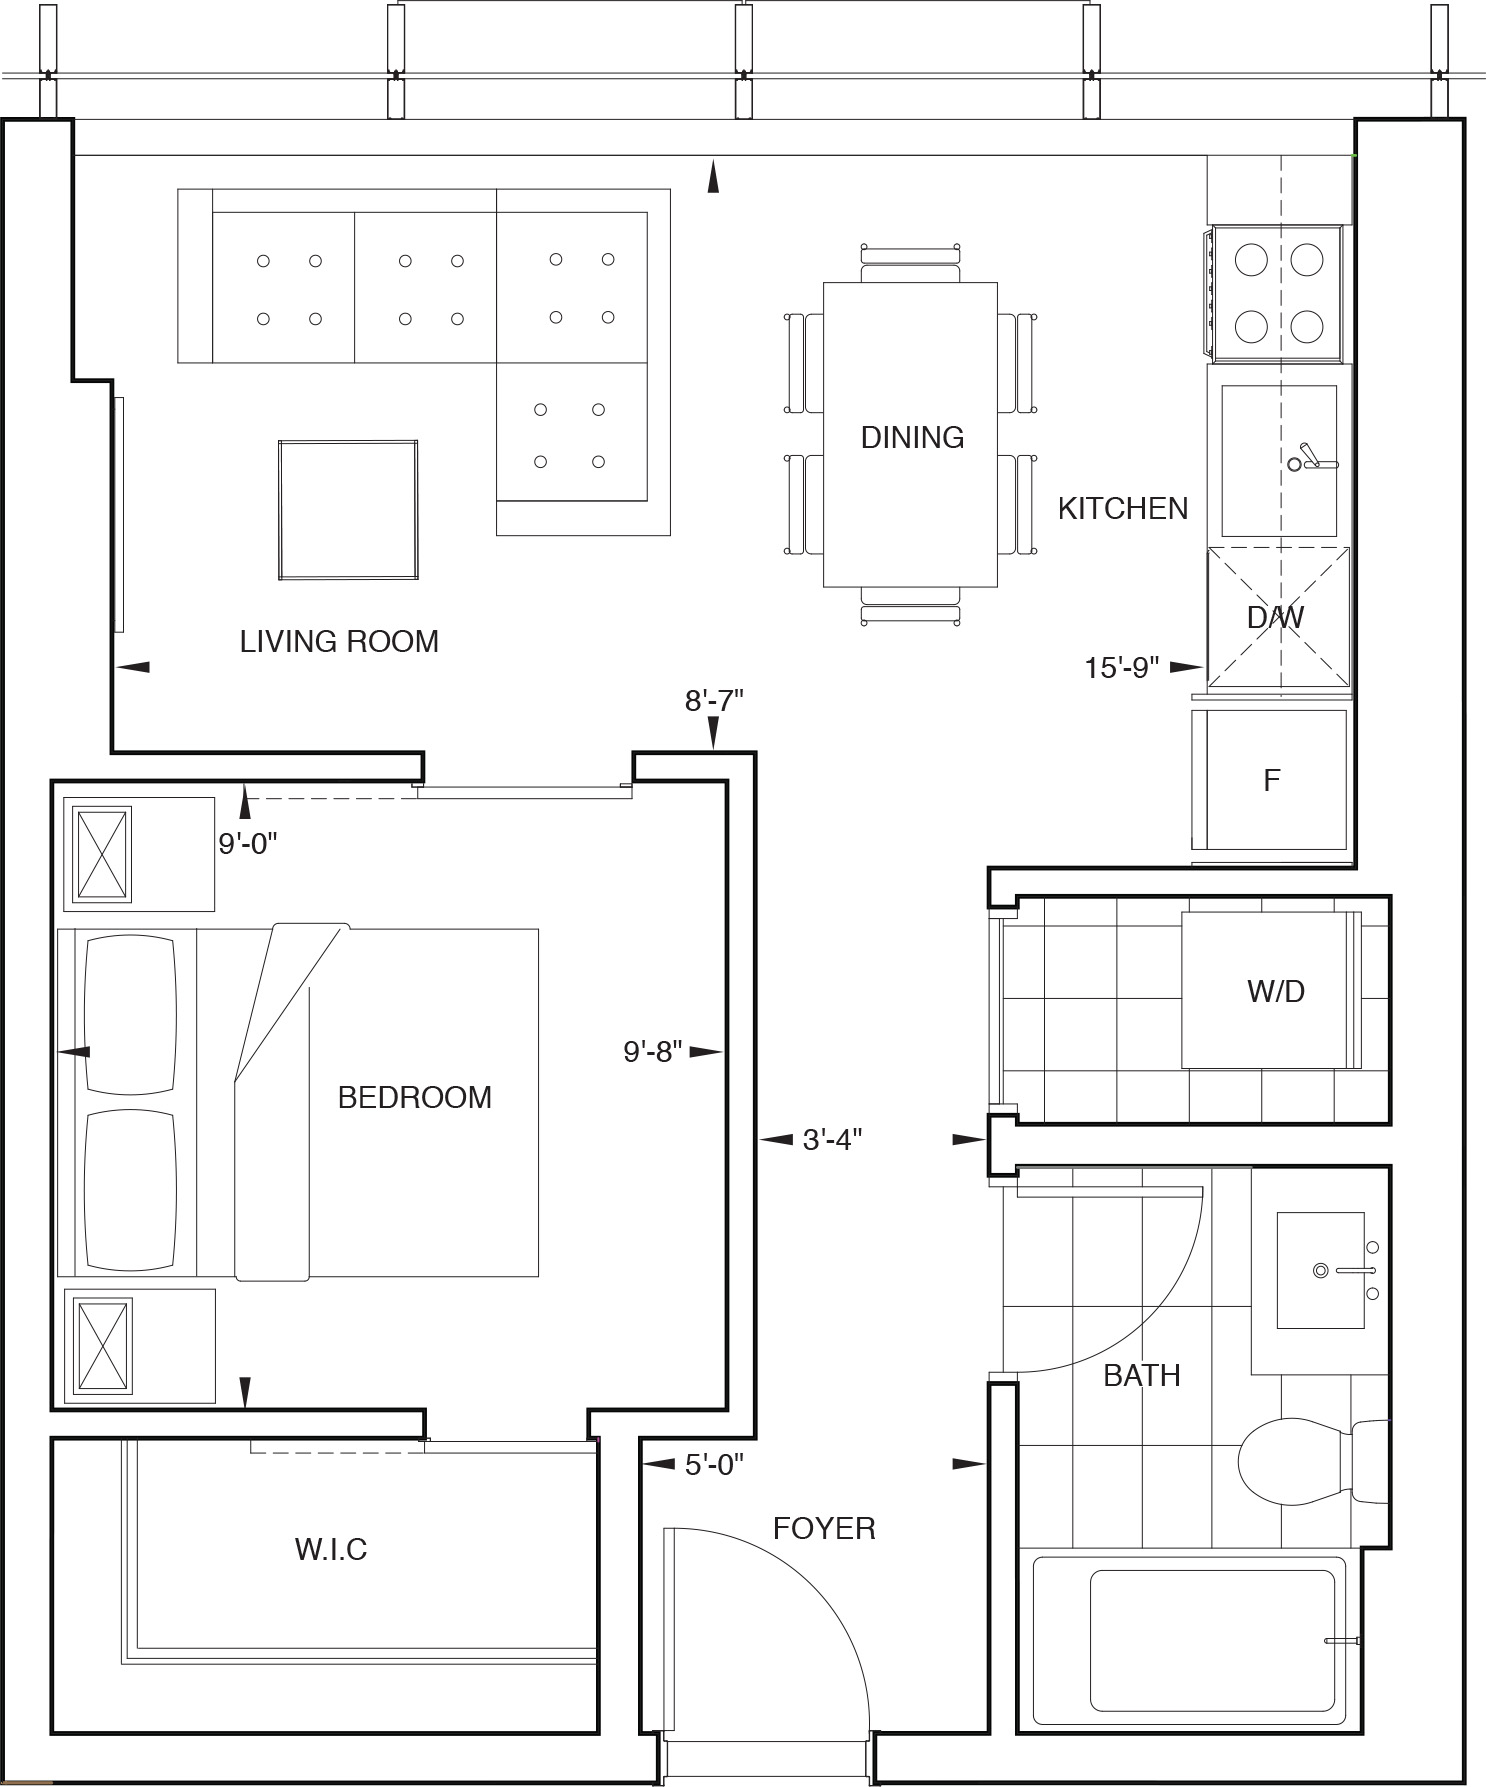 Floorplan for SKY Residence E